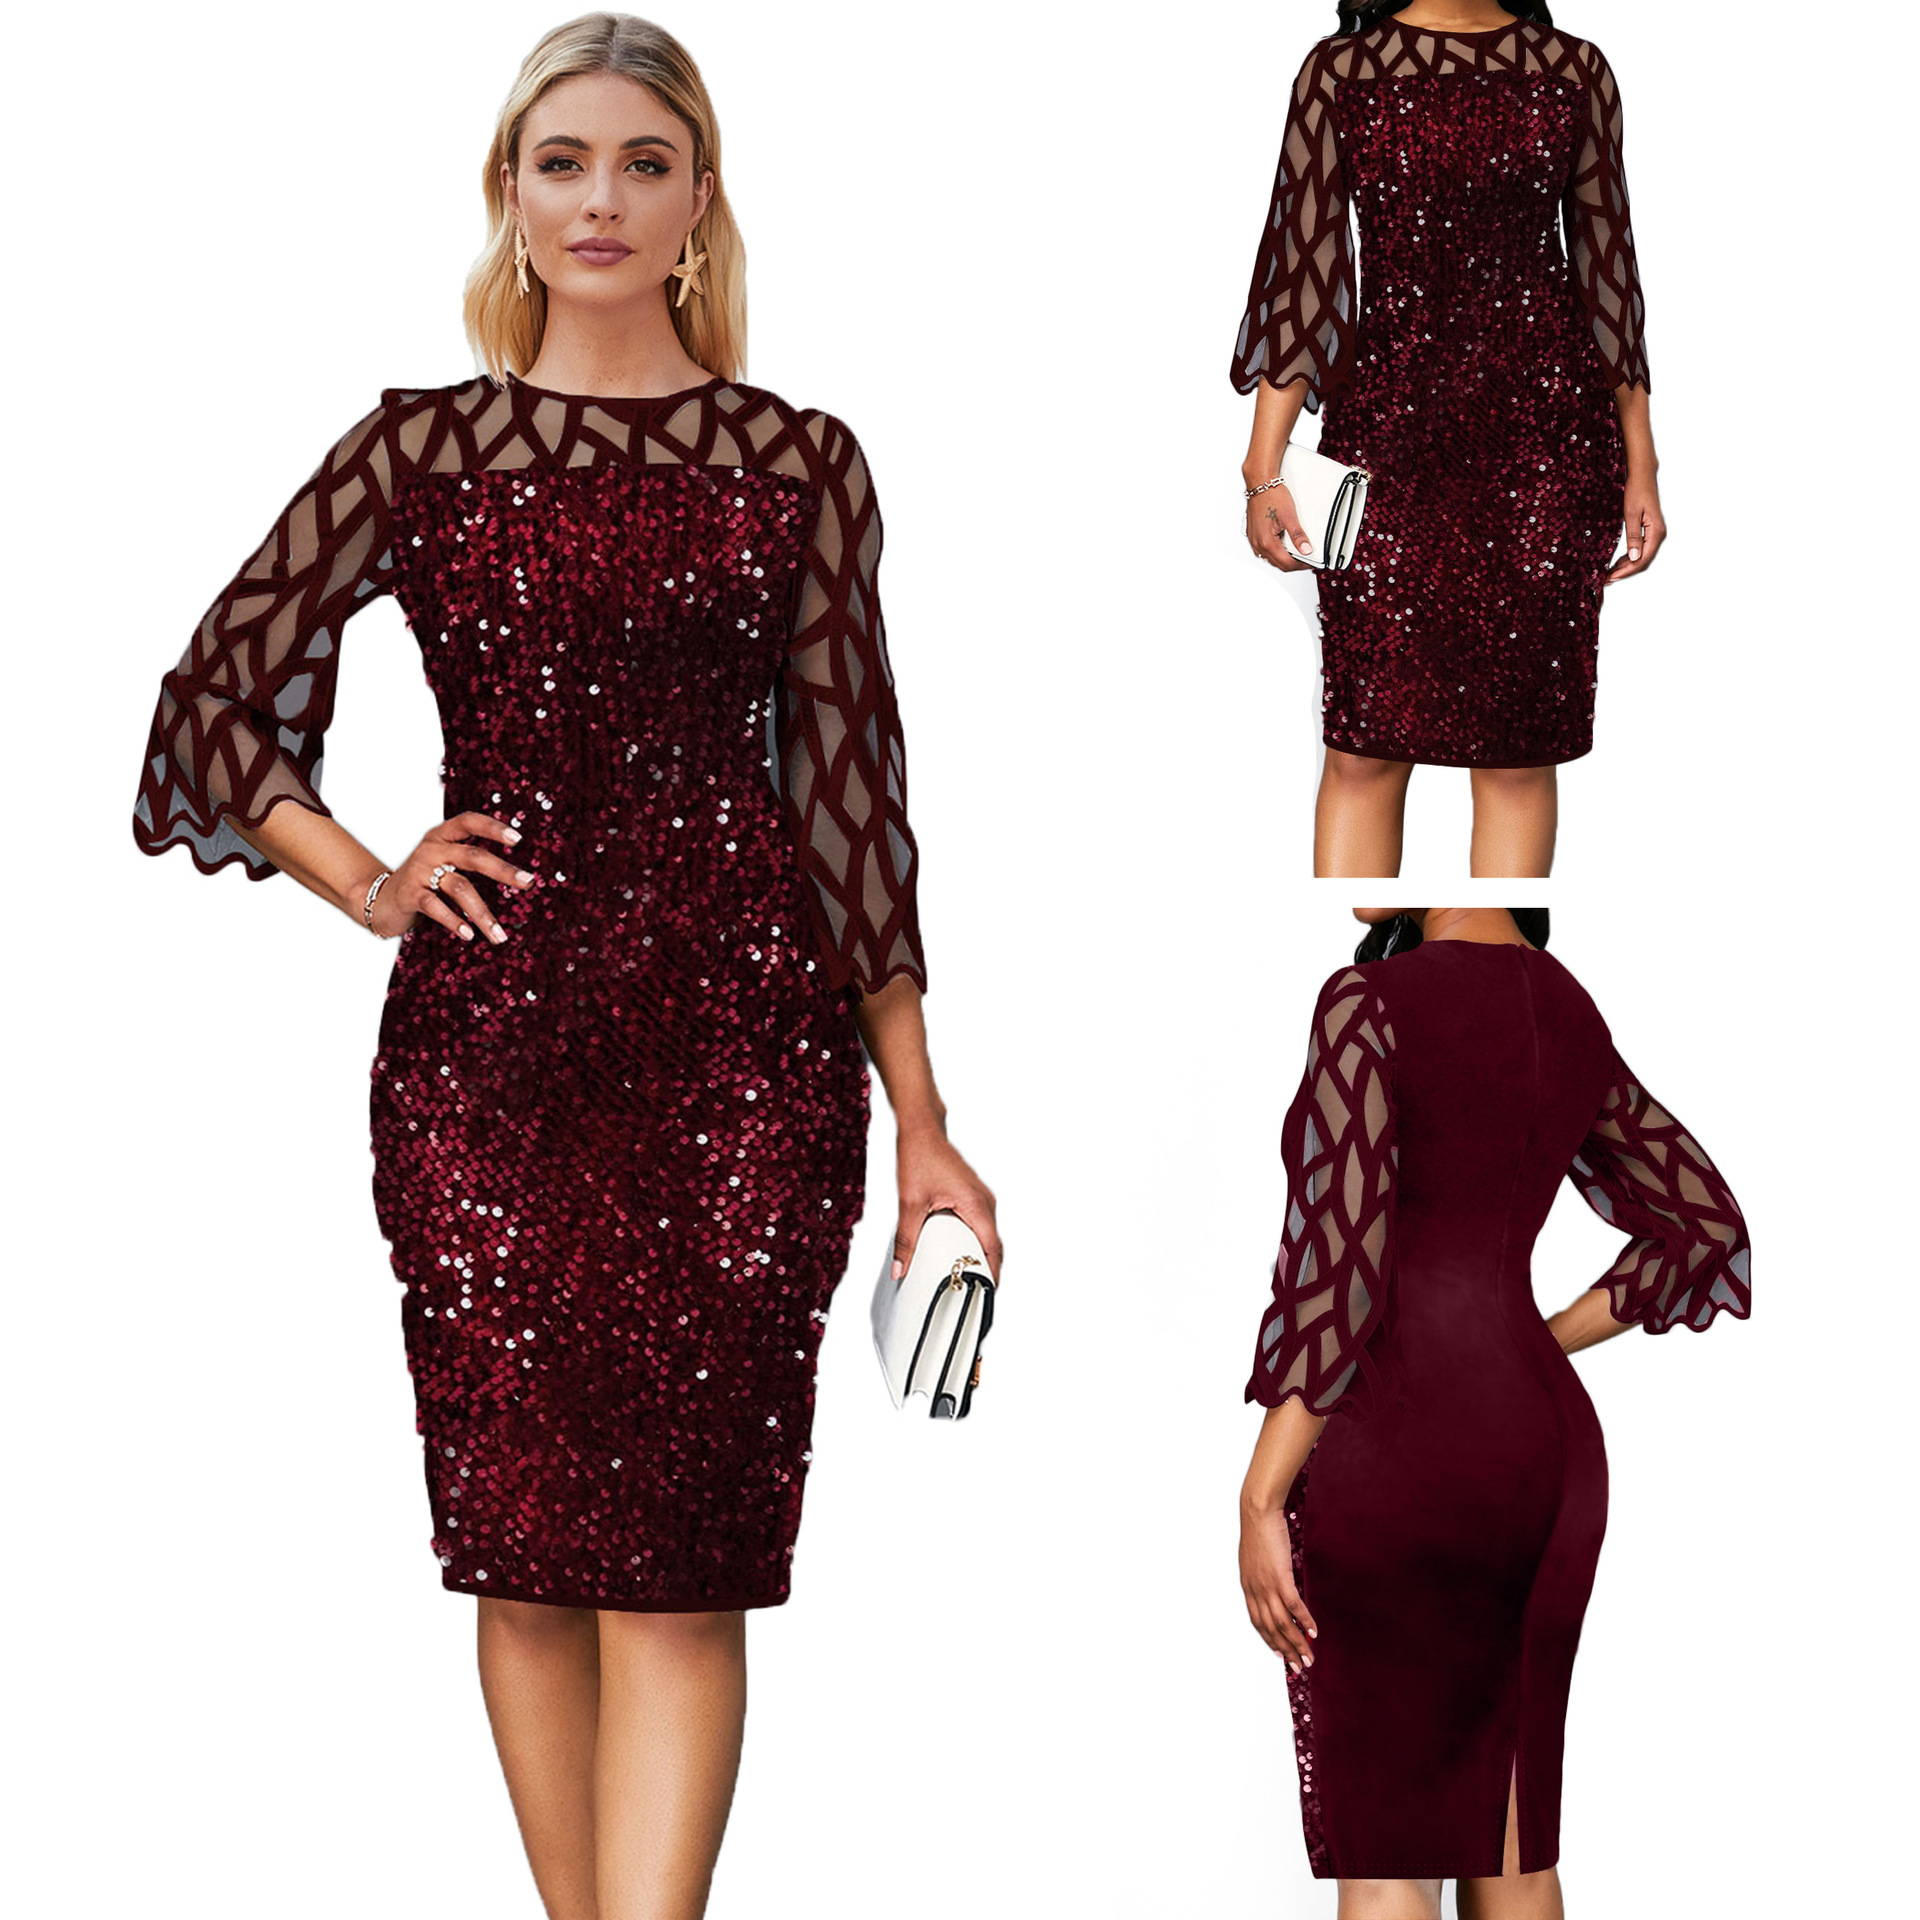 frican Dresses For Women 2020 Elegent Sequined New Arrival Fashion Style African Women Summer Plus Size Knee-length Dress